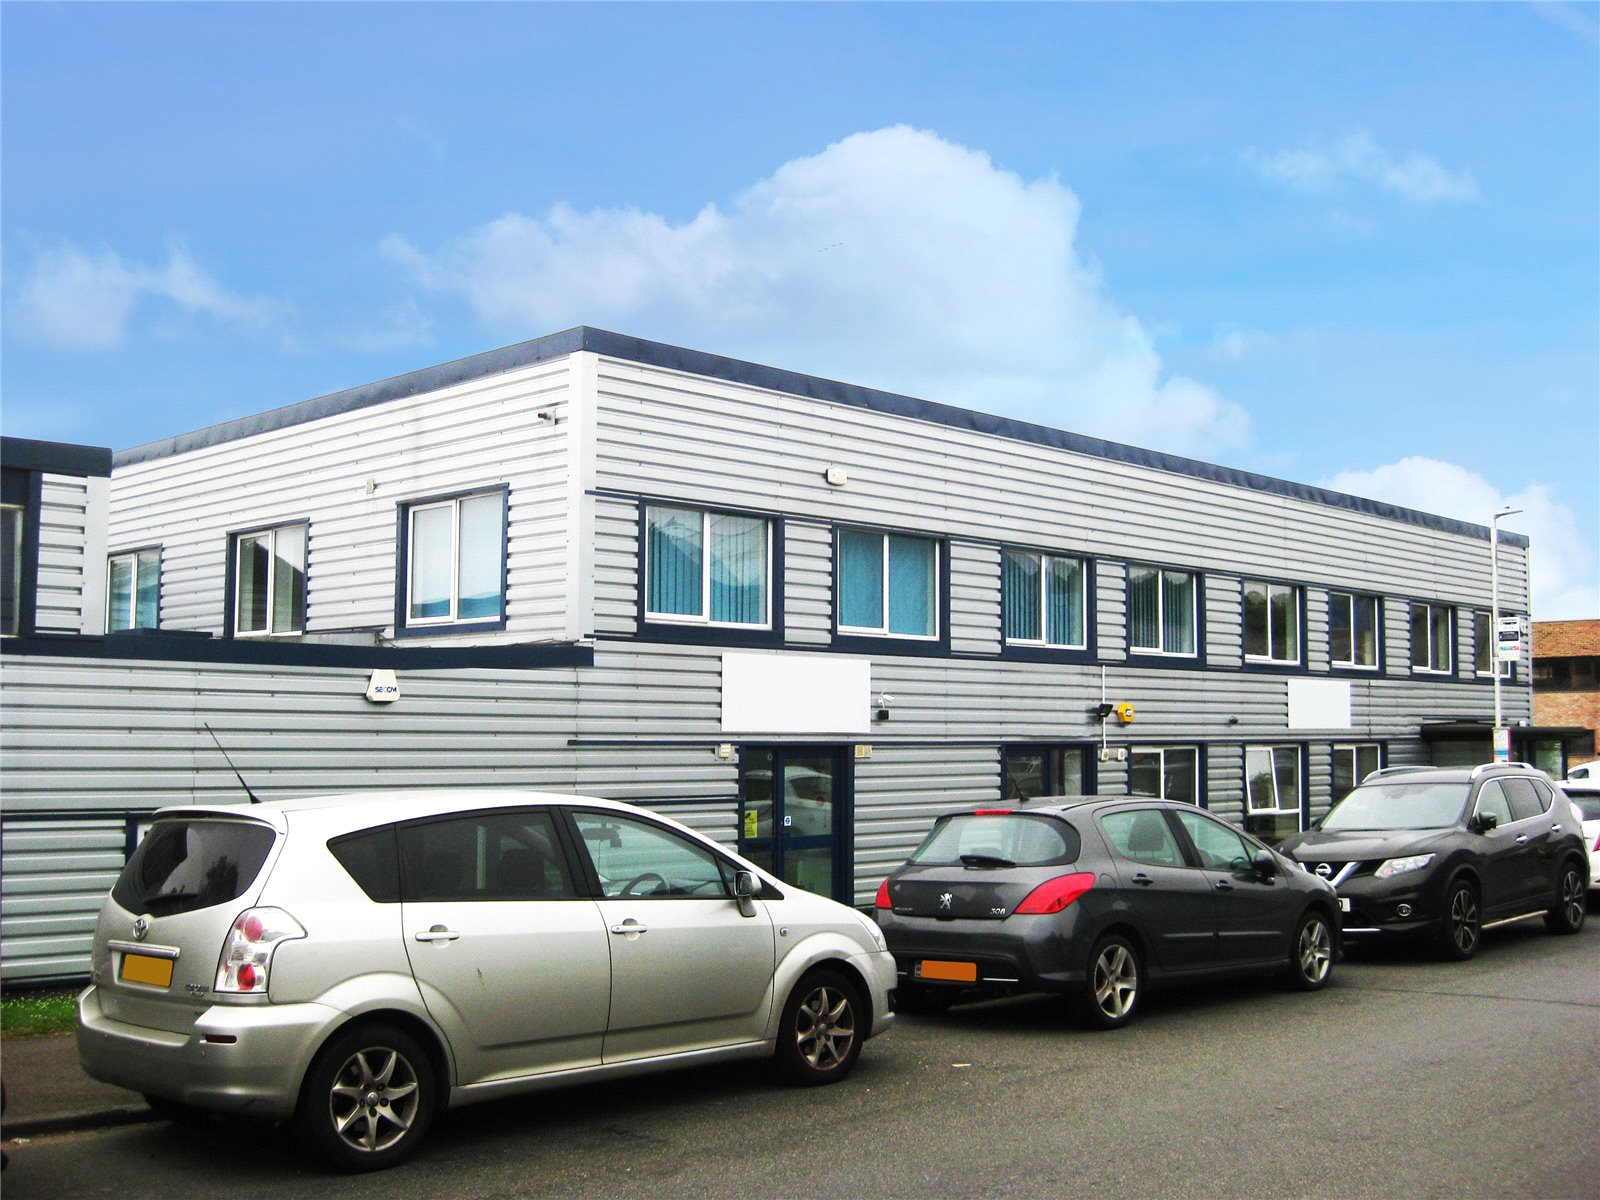 Fircroft Business Centre, Fircroft Way - £149,950